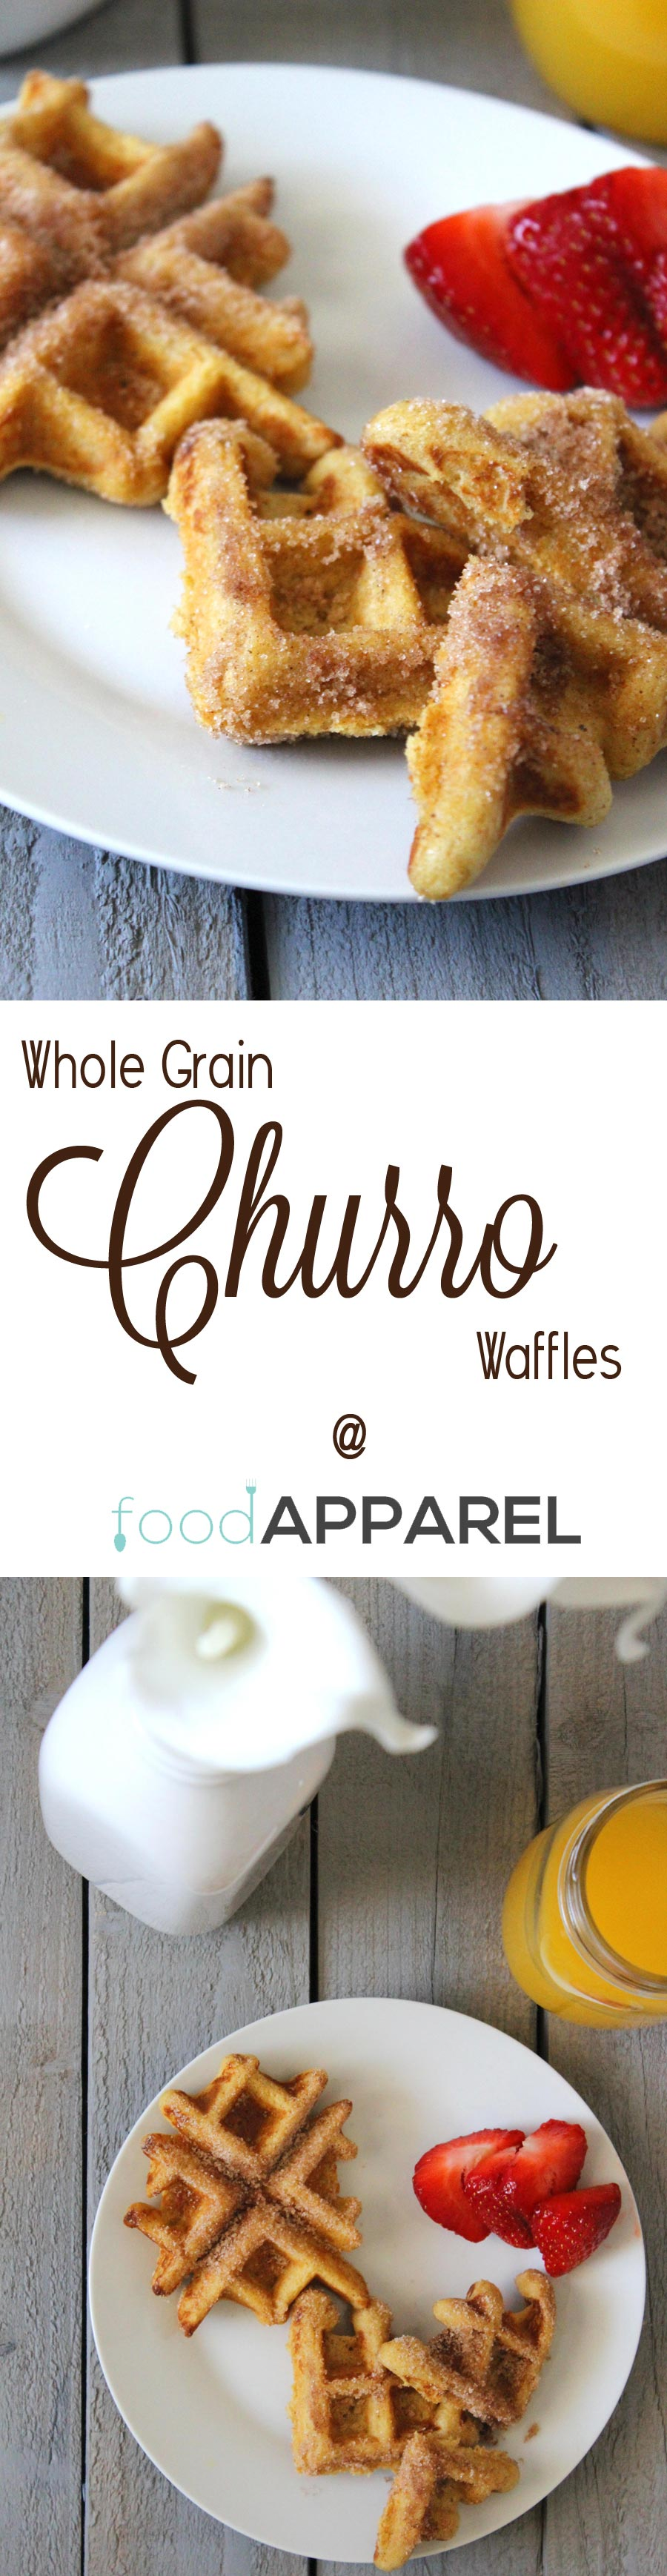 Whole Grain Churro Waffles - perfect for breakfast, brunch....anytime!